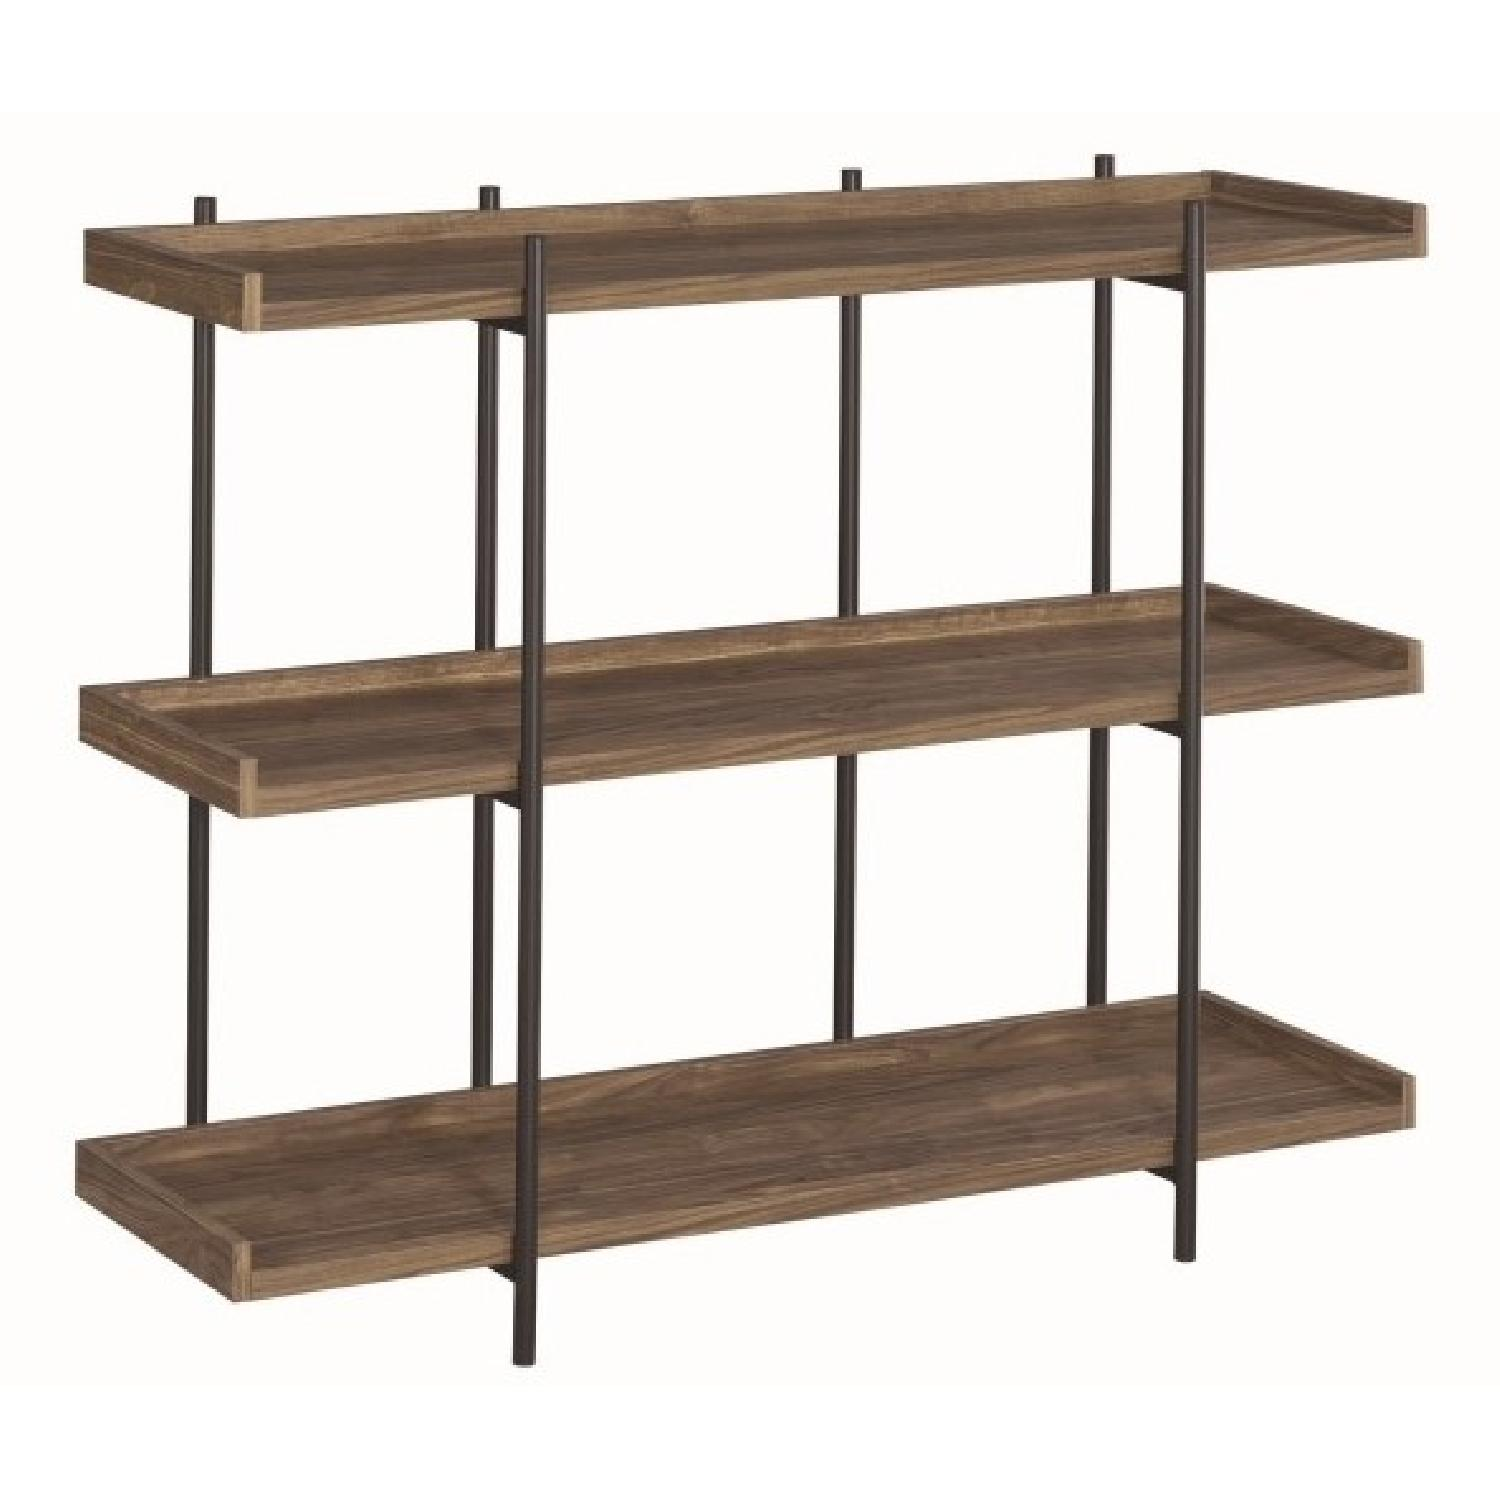 Industrial Style 3-Shelves Bookcase in Aged Walnut Finish - image-0